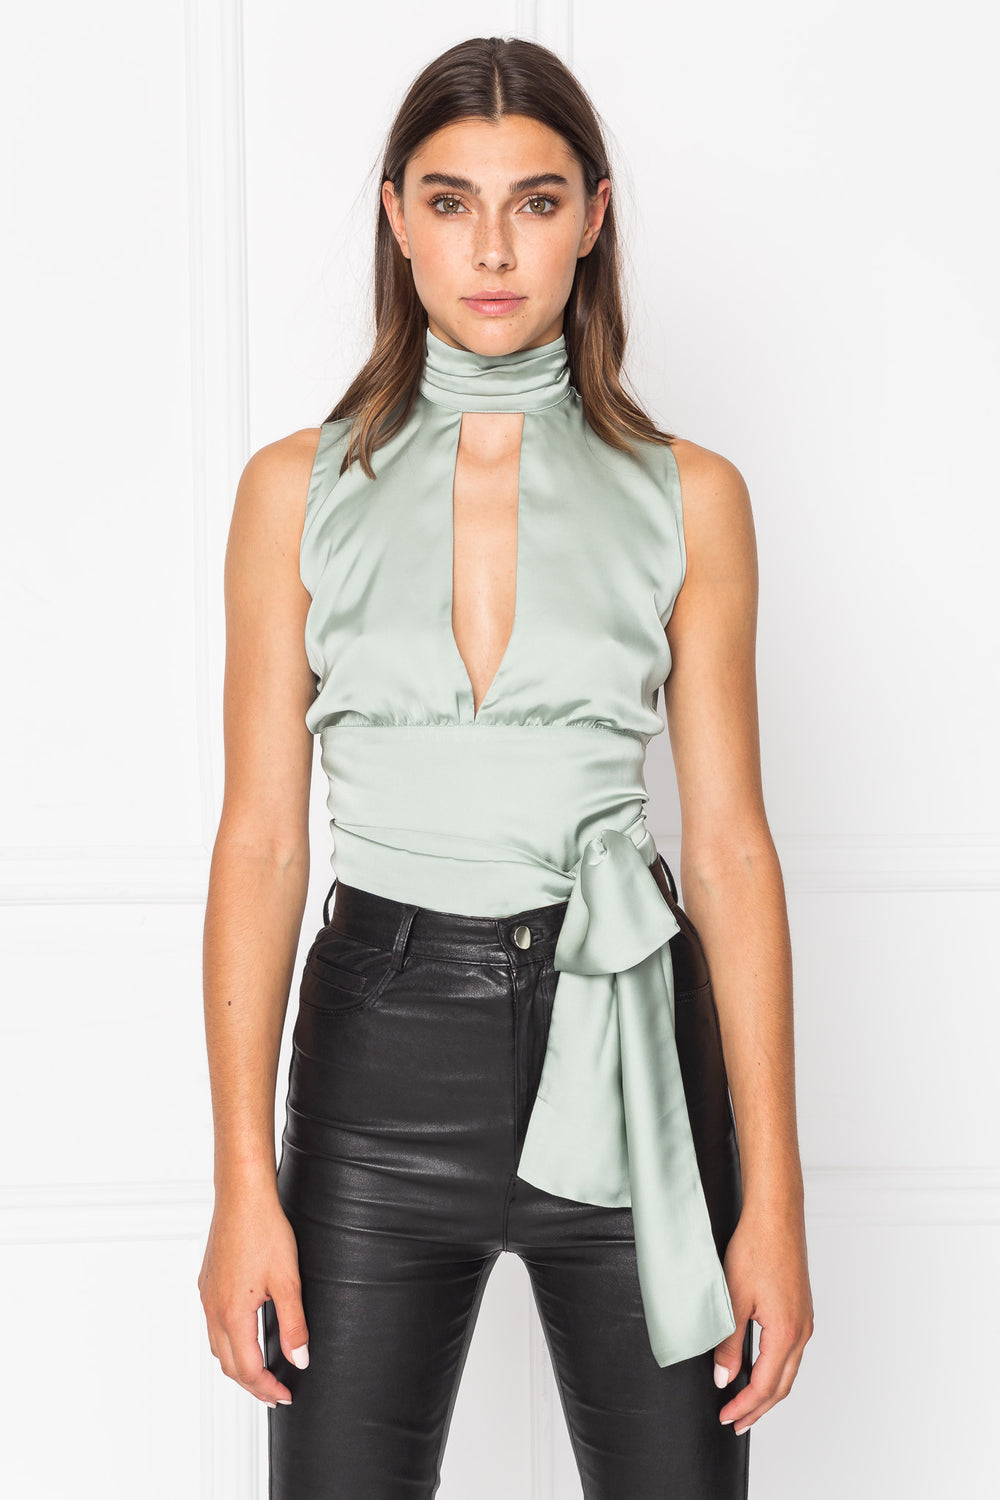 OPAL Halter Neck Top